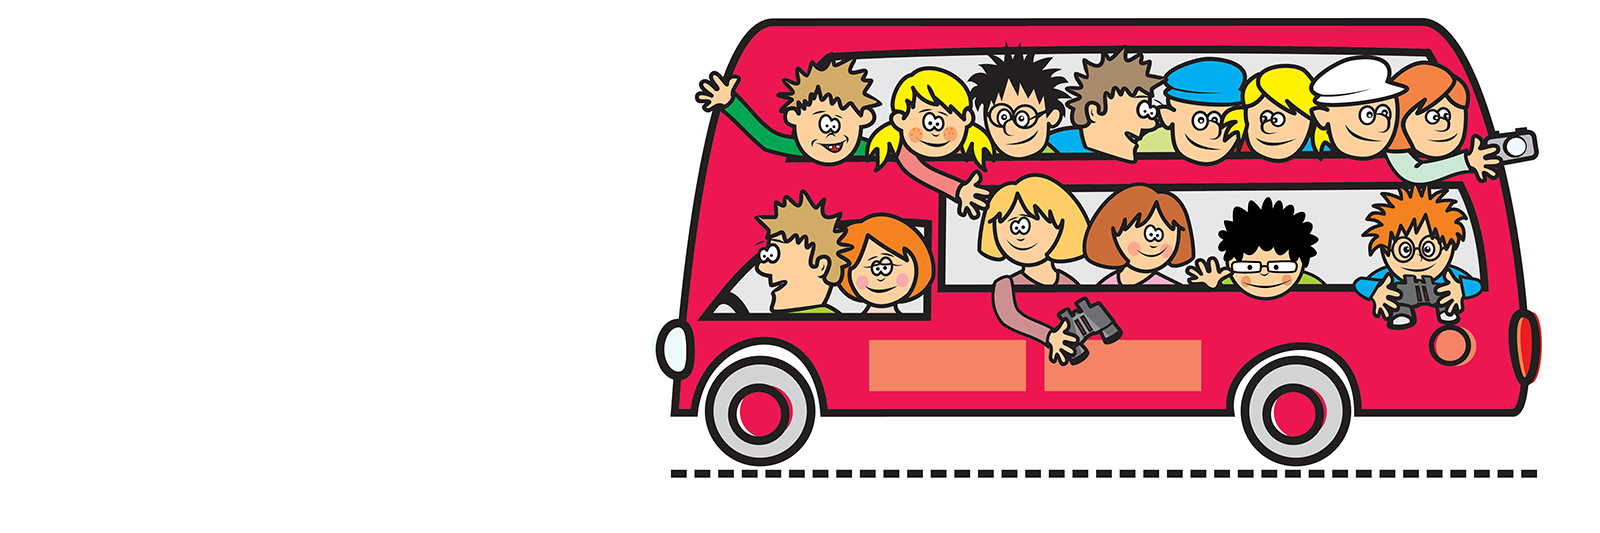 Museum clipart educational trip. School day trips with